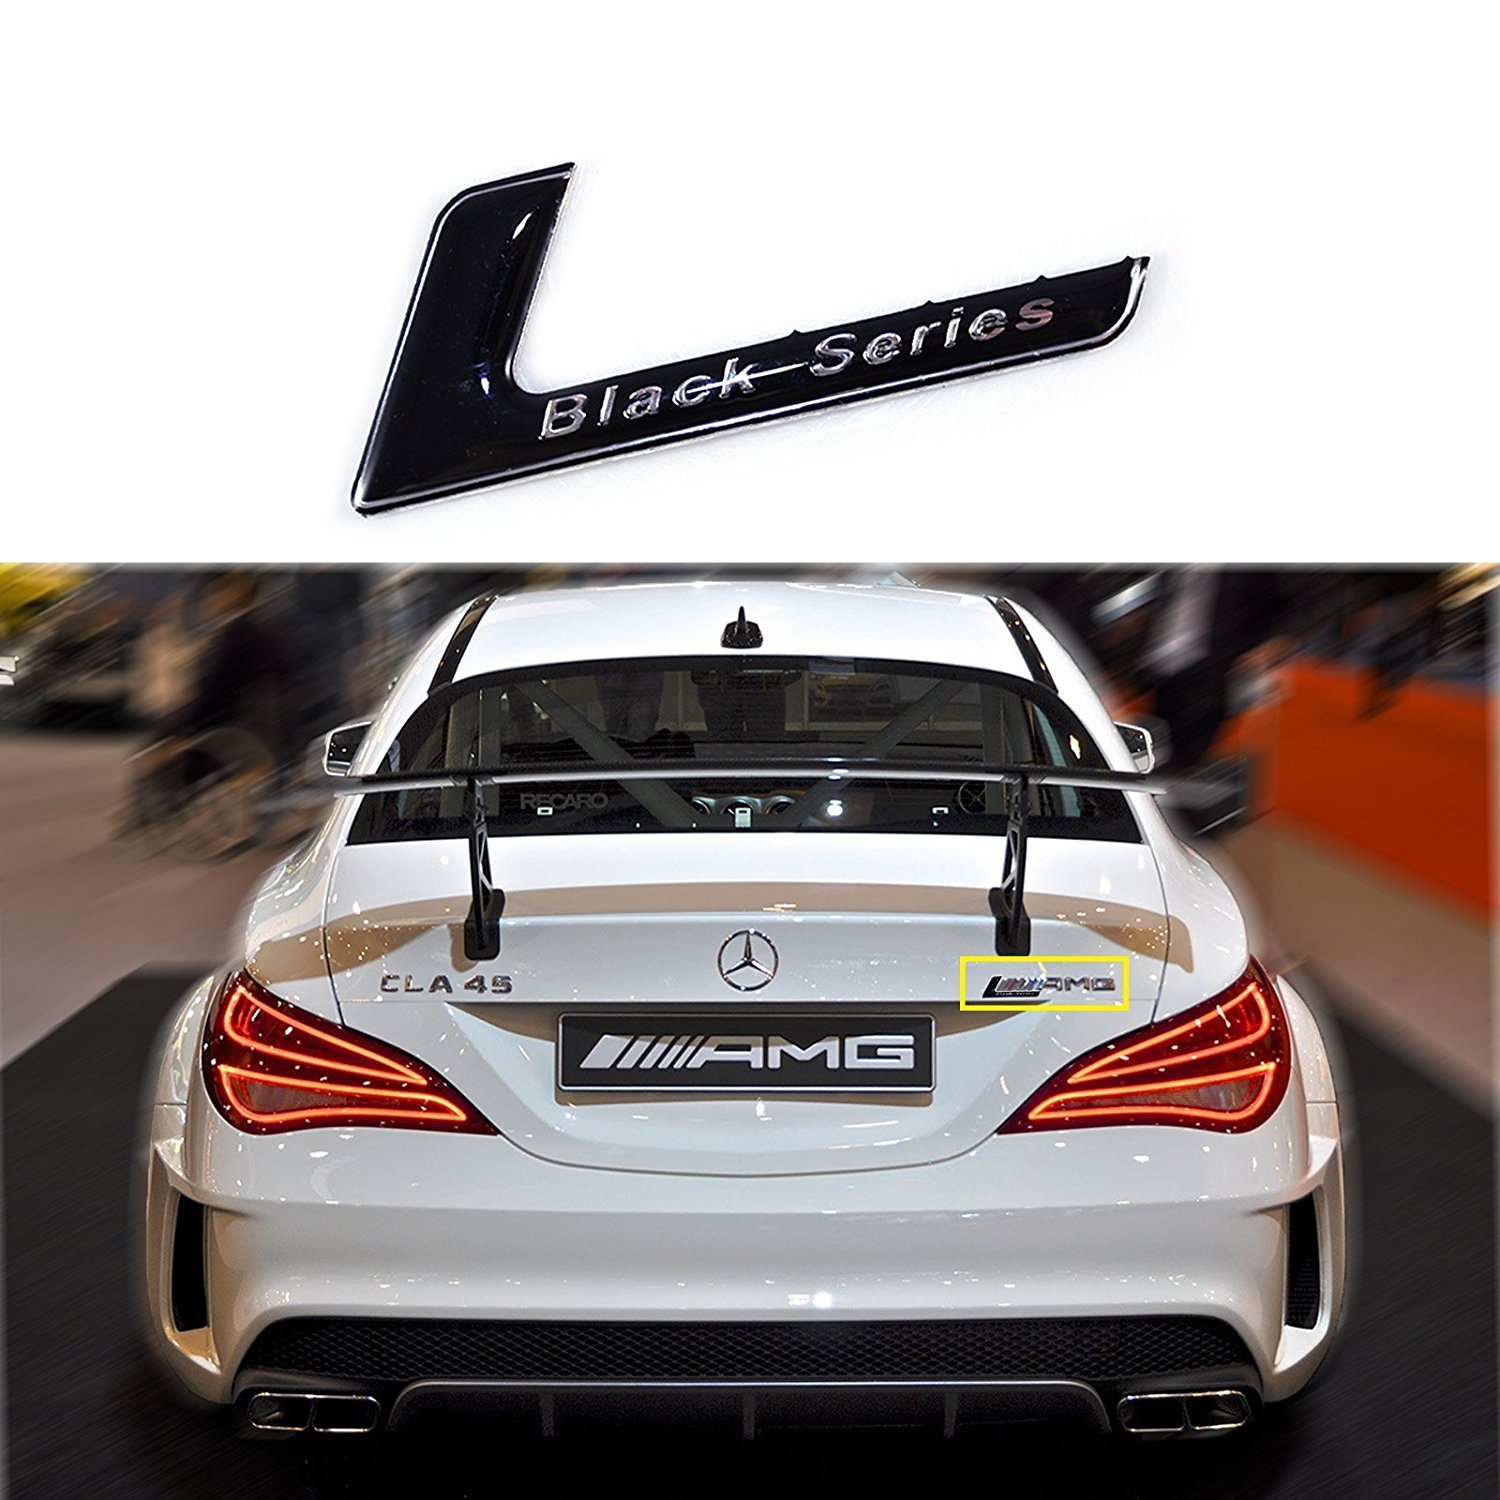 BRAND NEW 3D Adhesive CLK 55 Gloss Black Badge Emblem fits Mercedes Benz CLK55